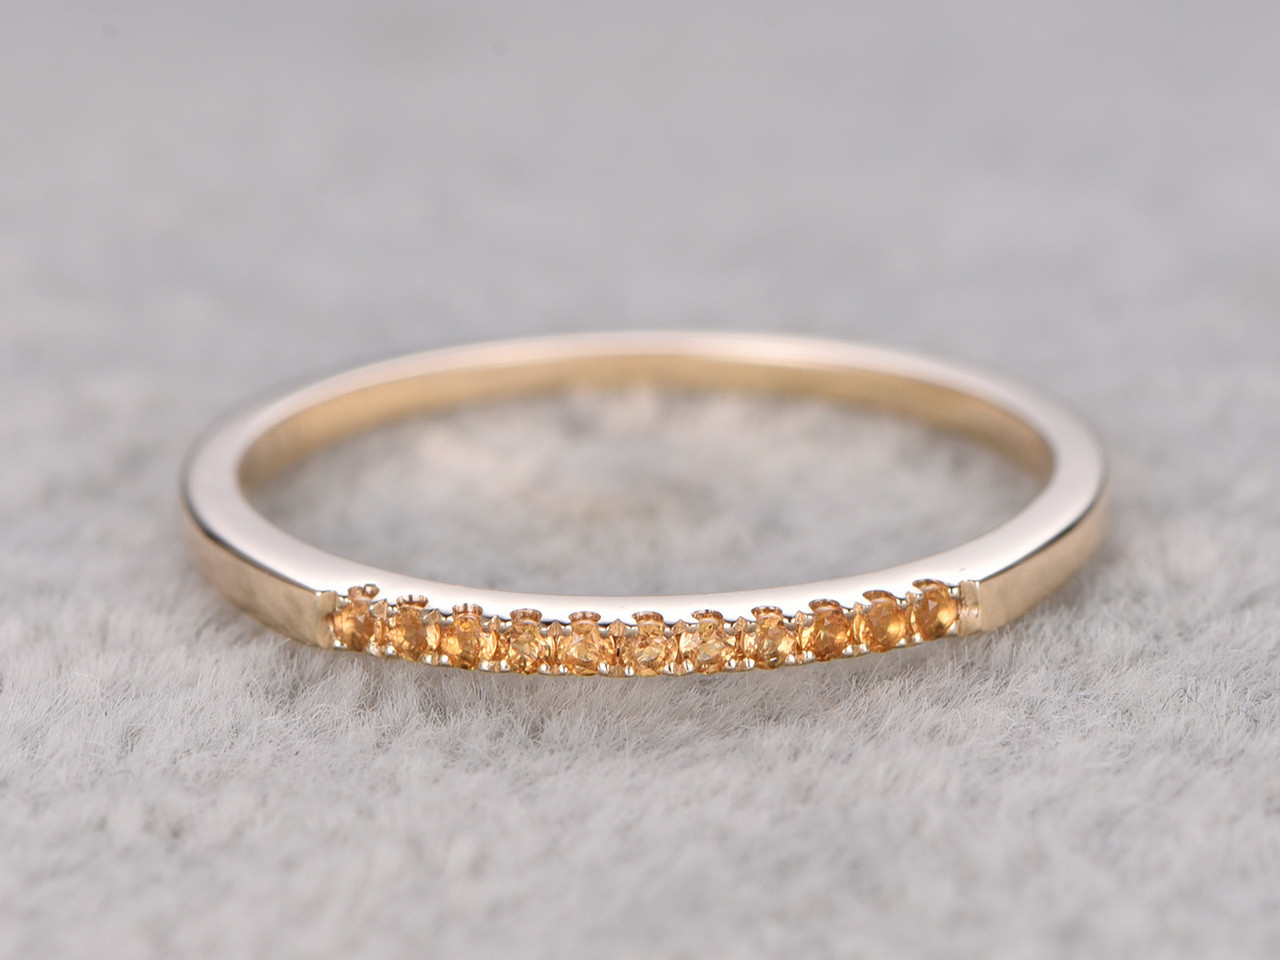 citrine shipping stacking sku november at rings ring calculated thin eternity gold band checkout birthstone yellow wedding pave